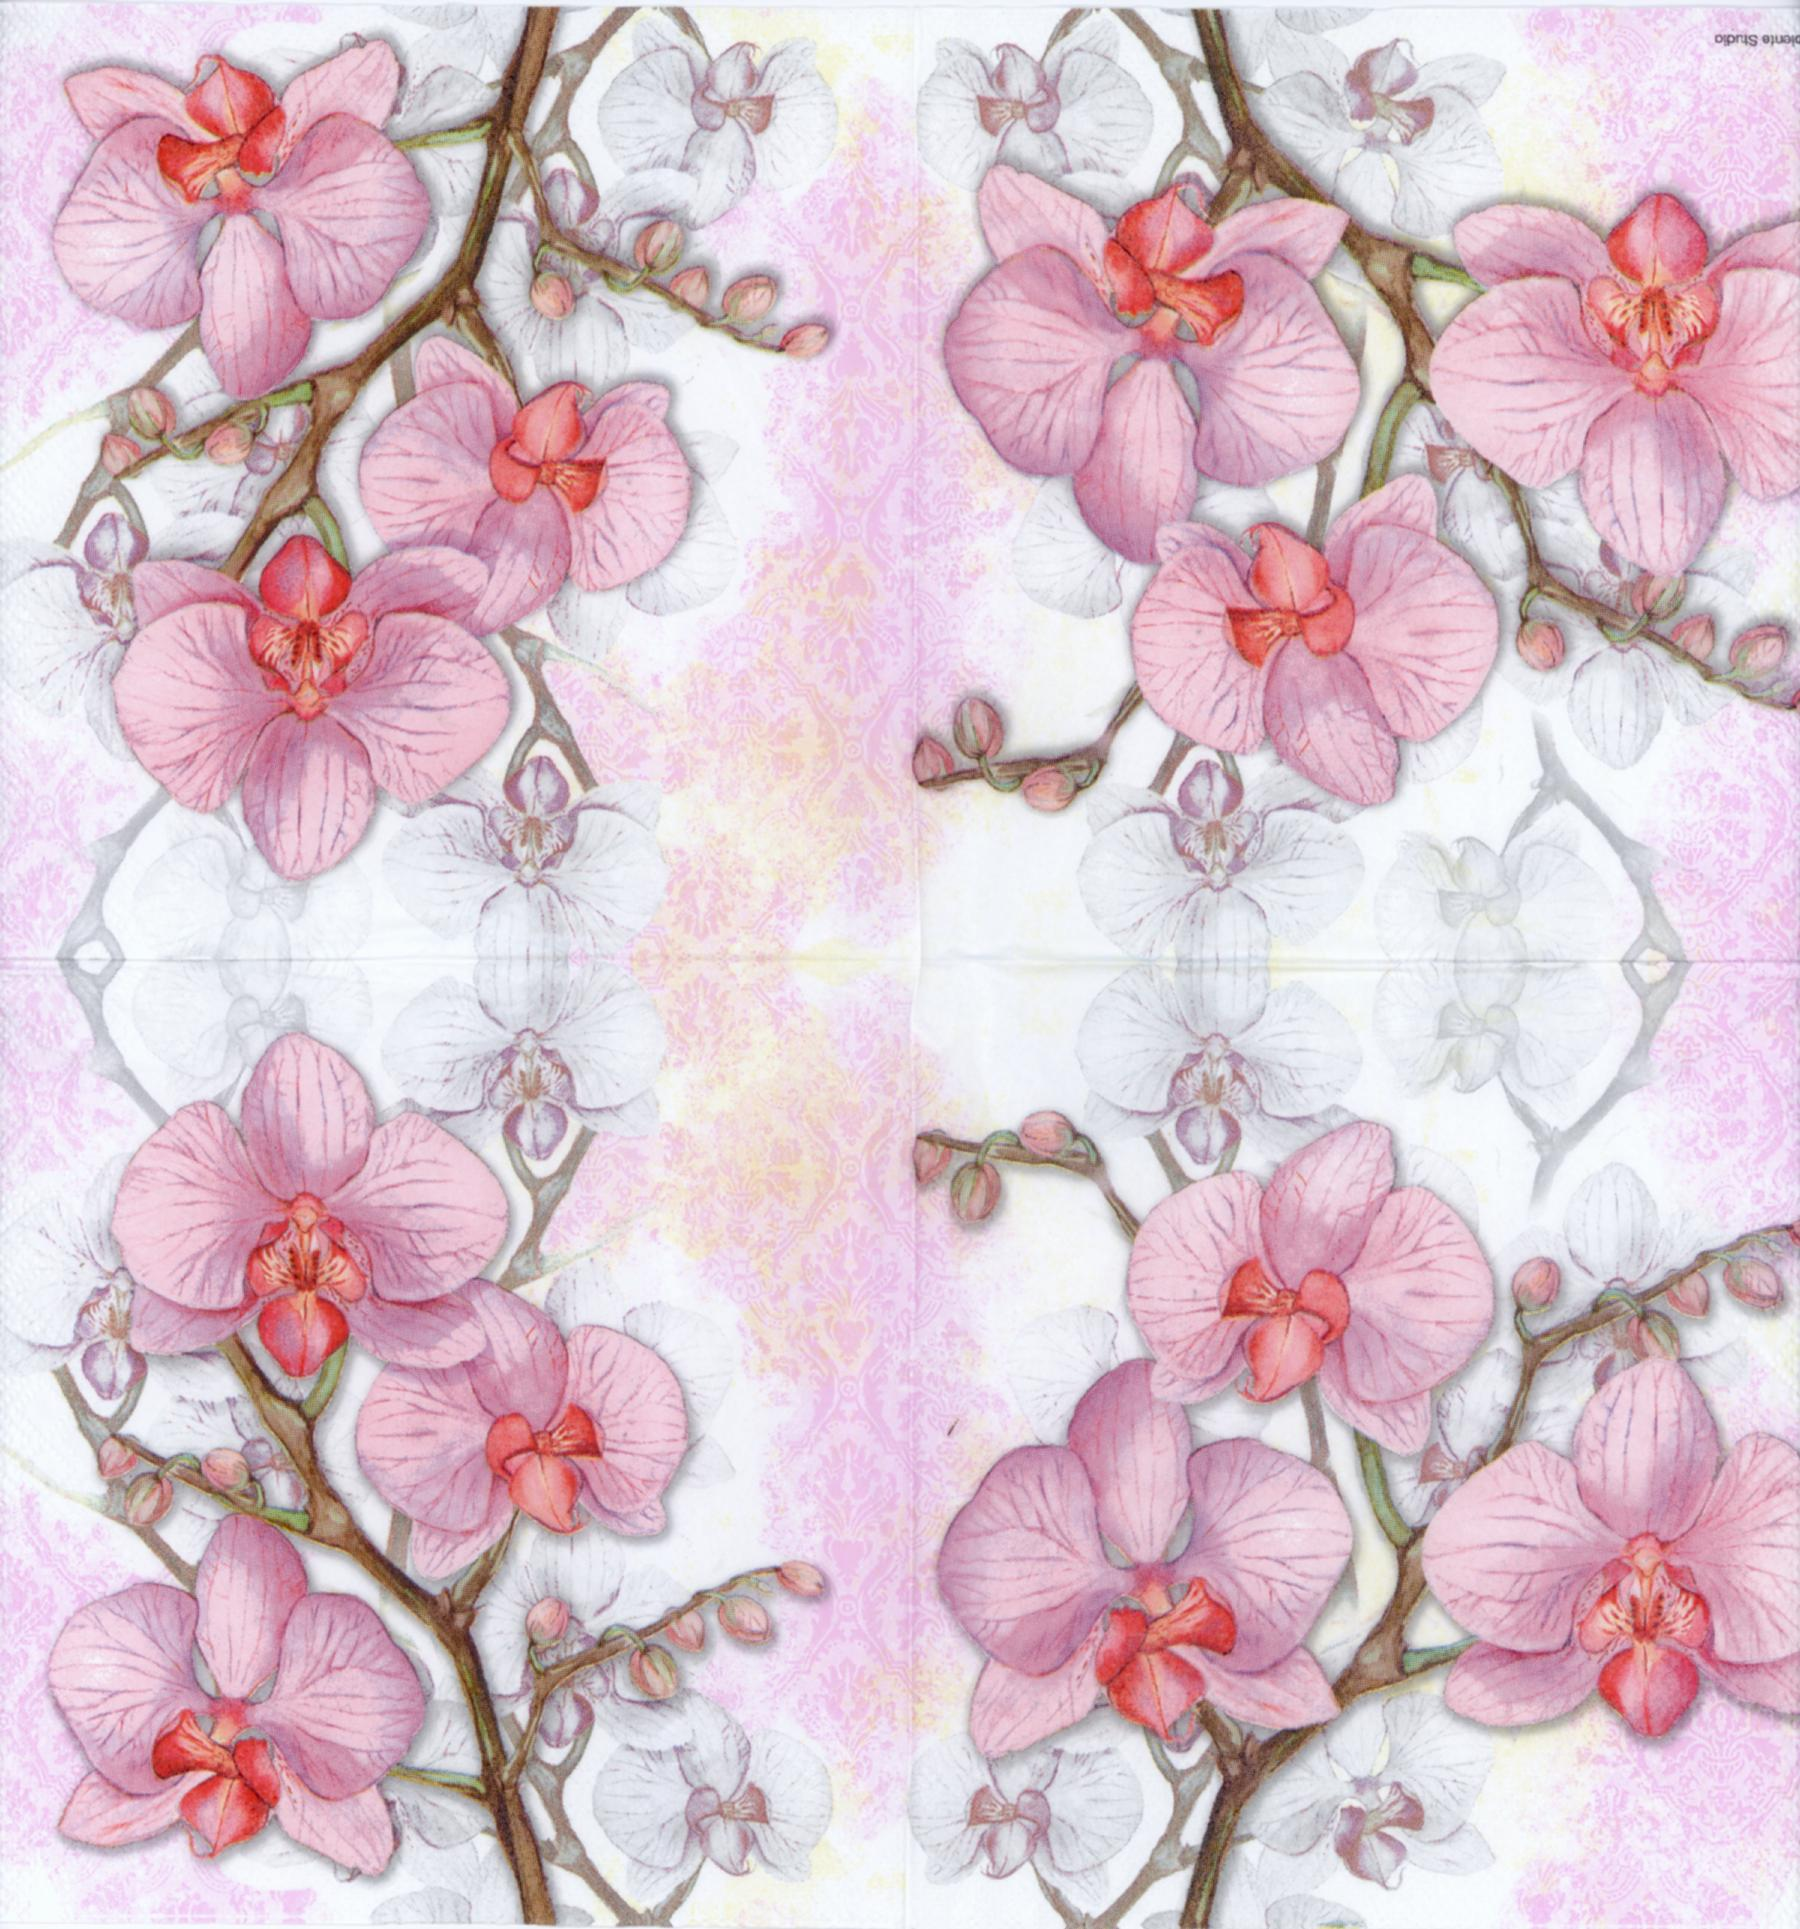 Decorative paper napkins of pink orchid luncheon napkins for decorative paper napkins of pink orchid luncheon napkins for decoupage tropical flower paper napkins mightylinksfo